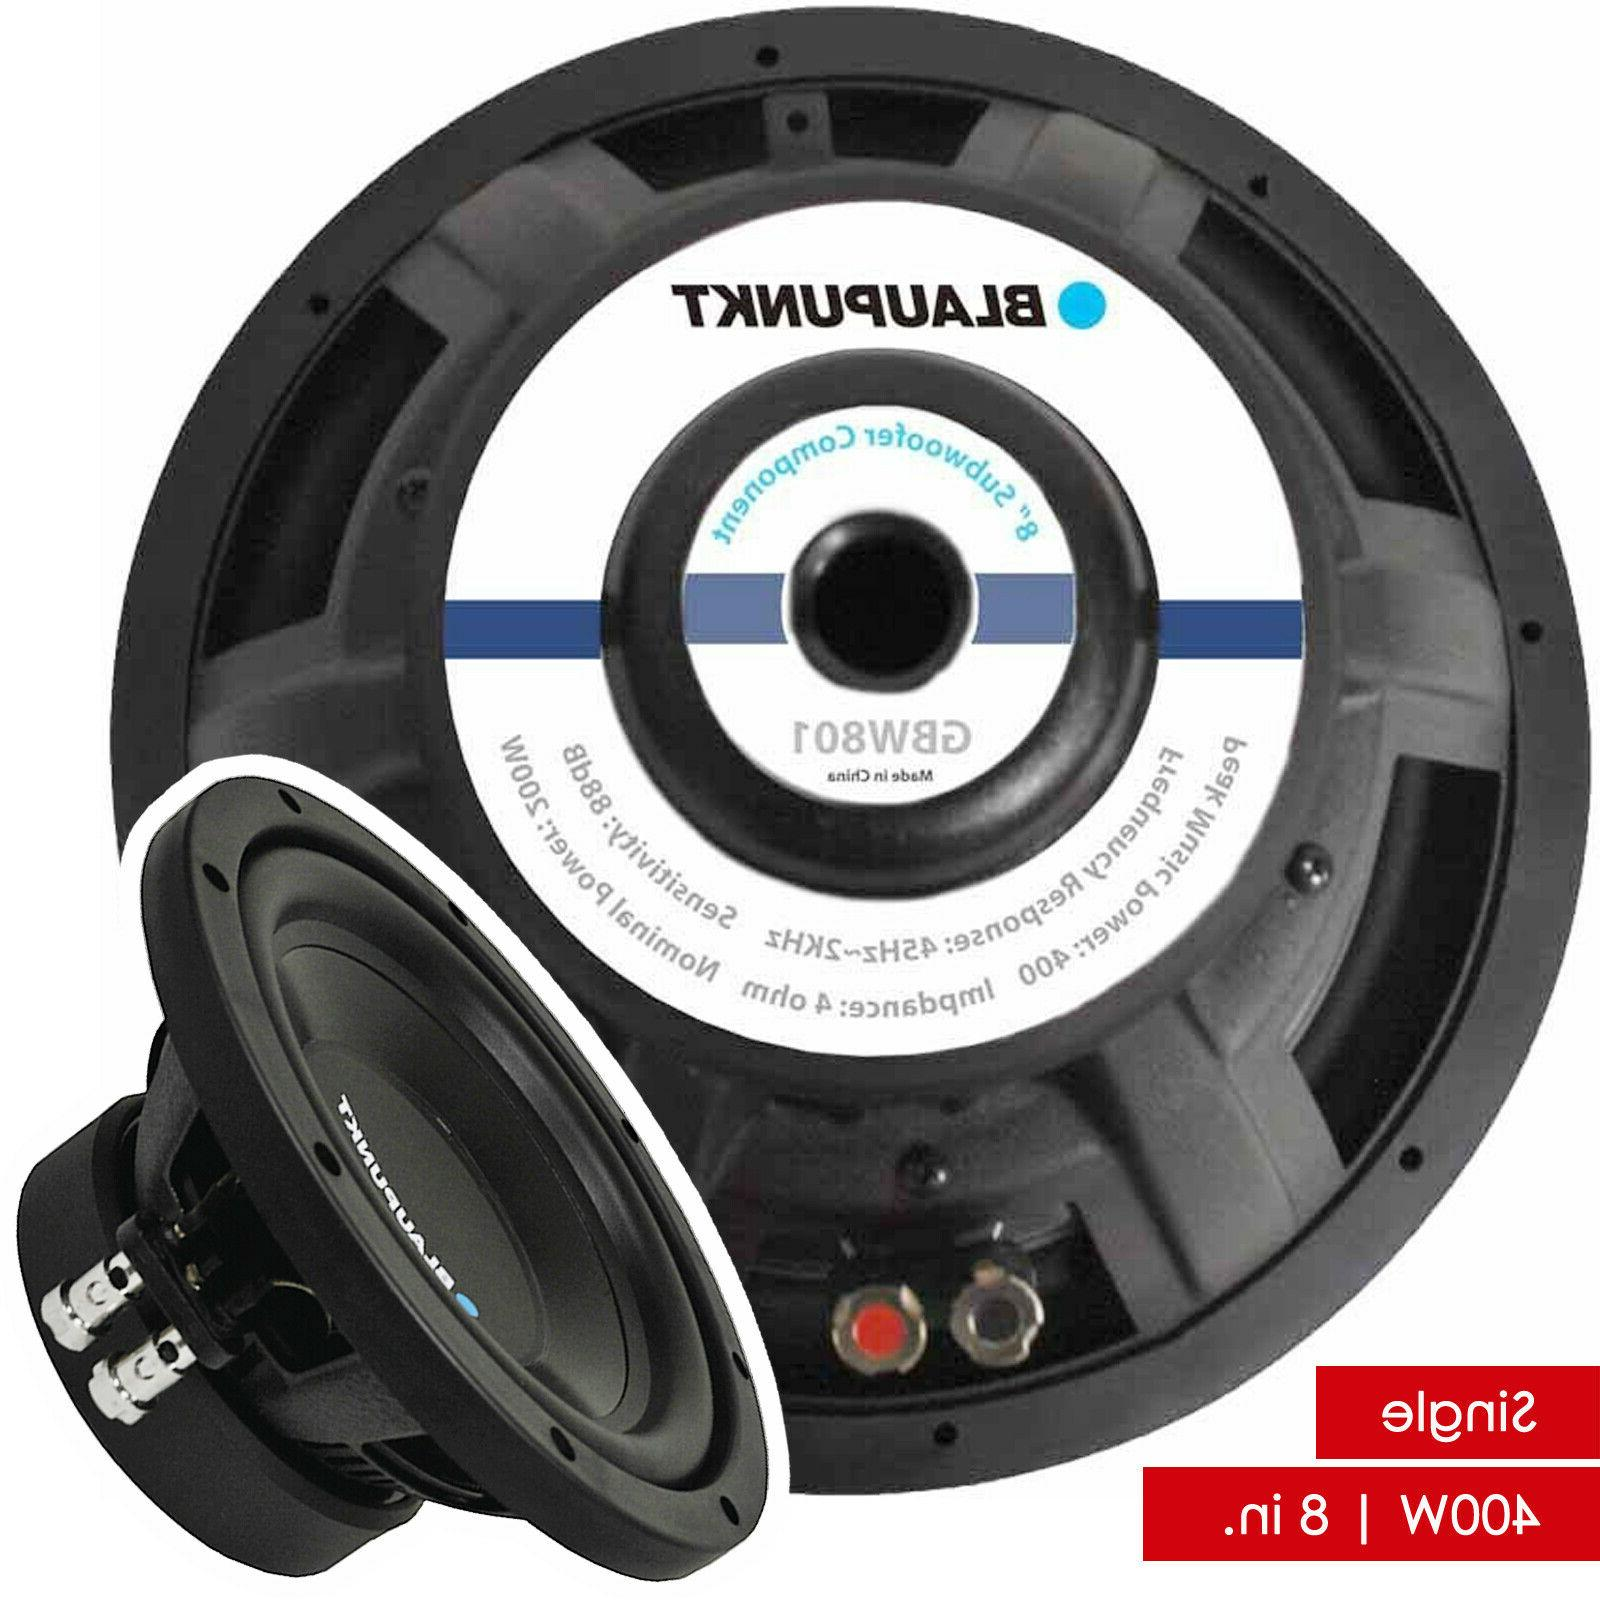 gbw801 8 inch single voice coil 400w